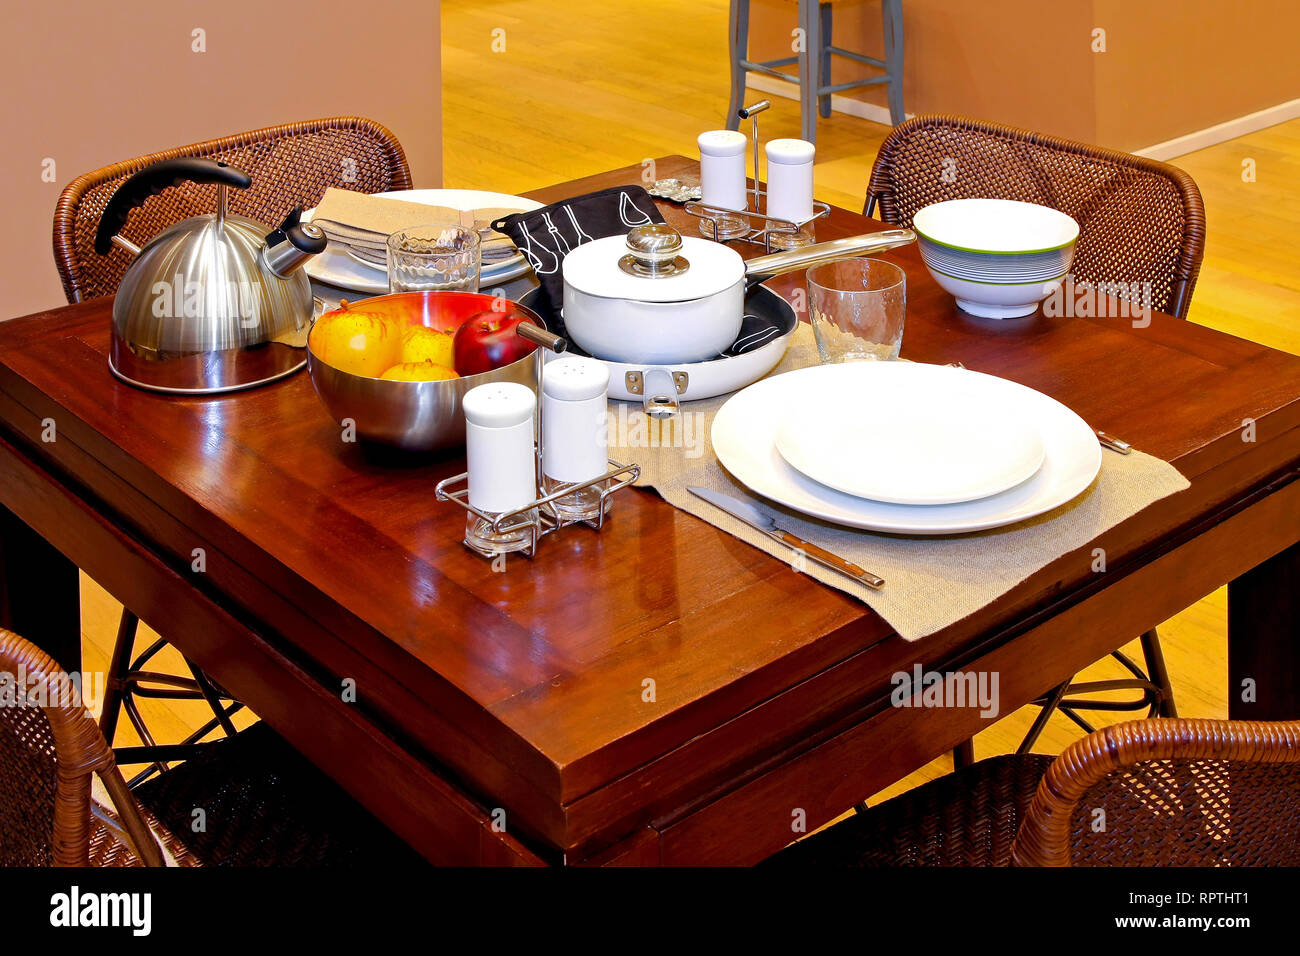 Kitchen table setup for breakfast with teapot Stock Photo   Alamy